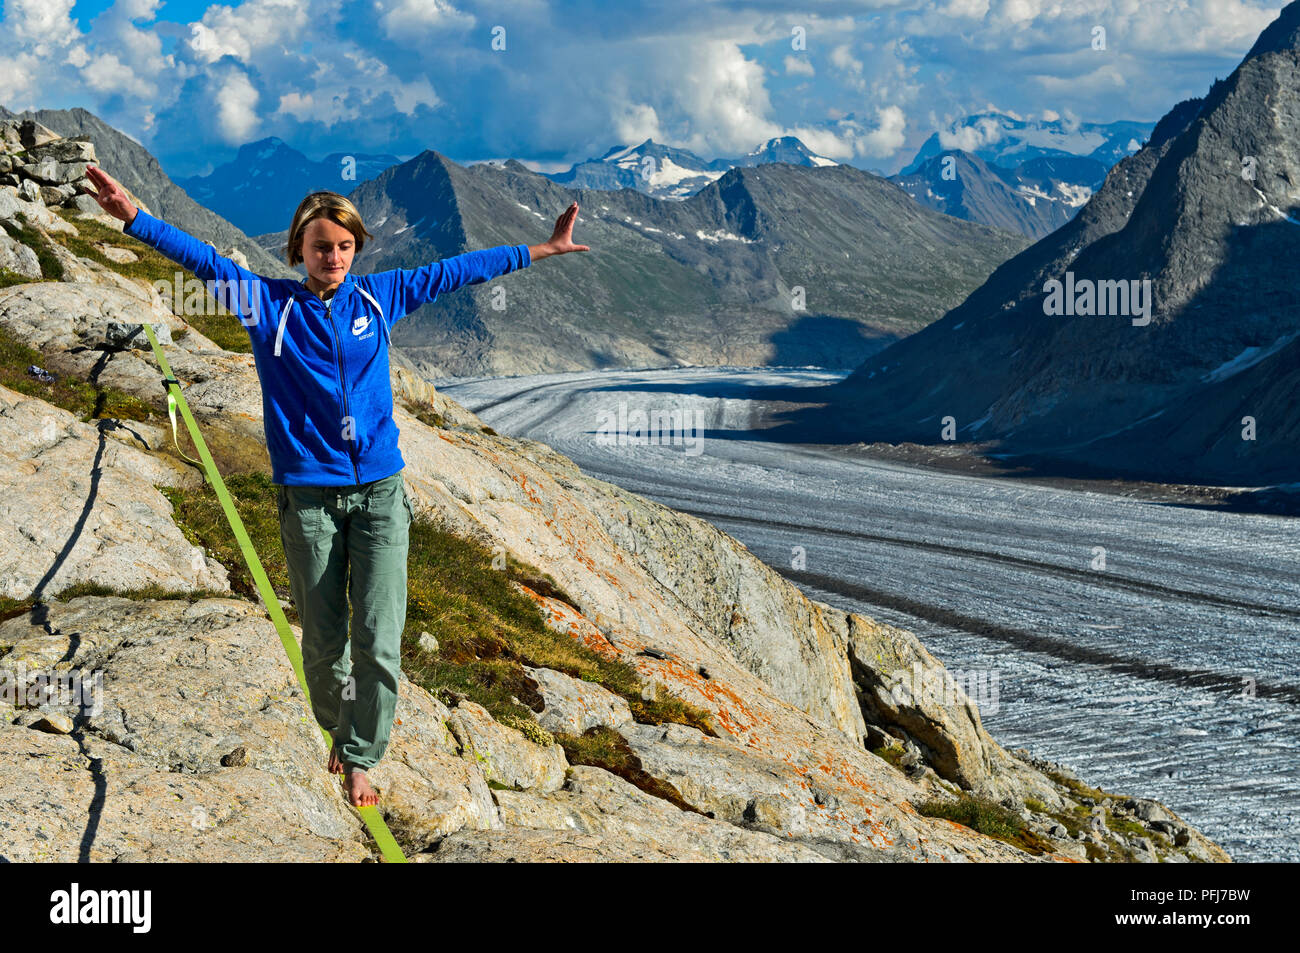 Young woman is balancing on the slackline at the Konkordia Hut over the Aletsch Glacier, Bernese Alps, Valais, Switzerland - Stock Image